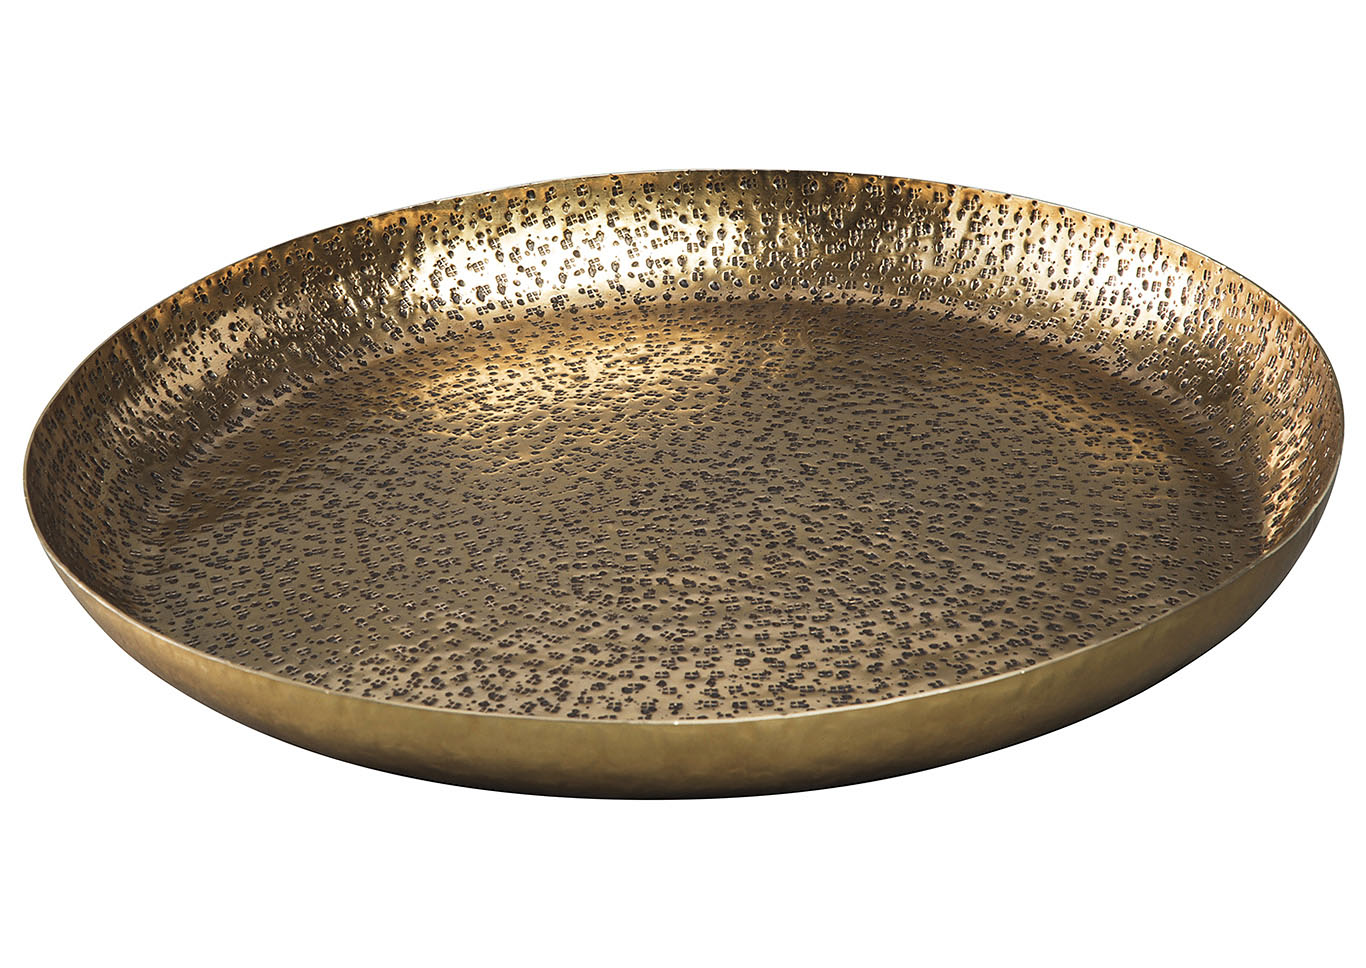 Morley Antique Brass Finish Tray,Signature Design By Ashley